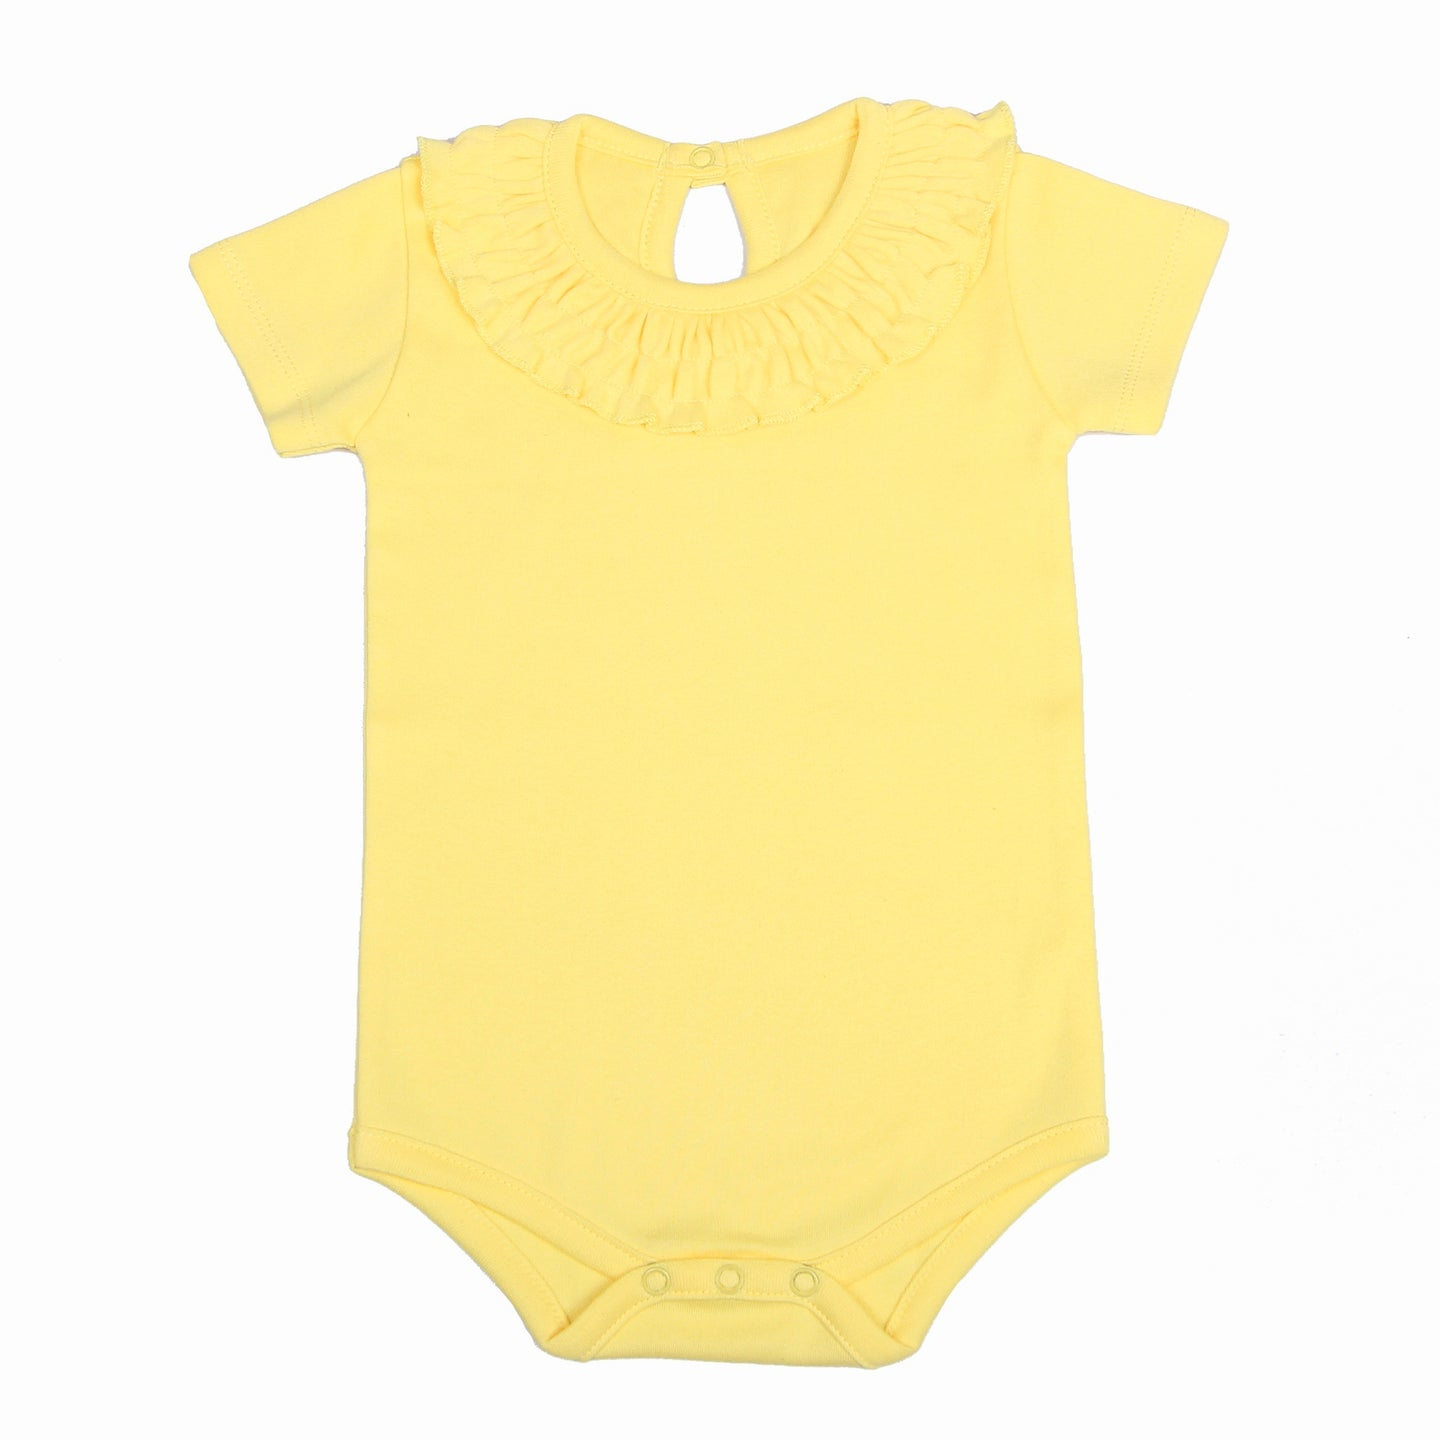 FH-5011 - Baby Girl Bodysuit/Romper - Frill On Neck Yellow Solid - Featherhead Baby